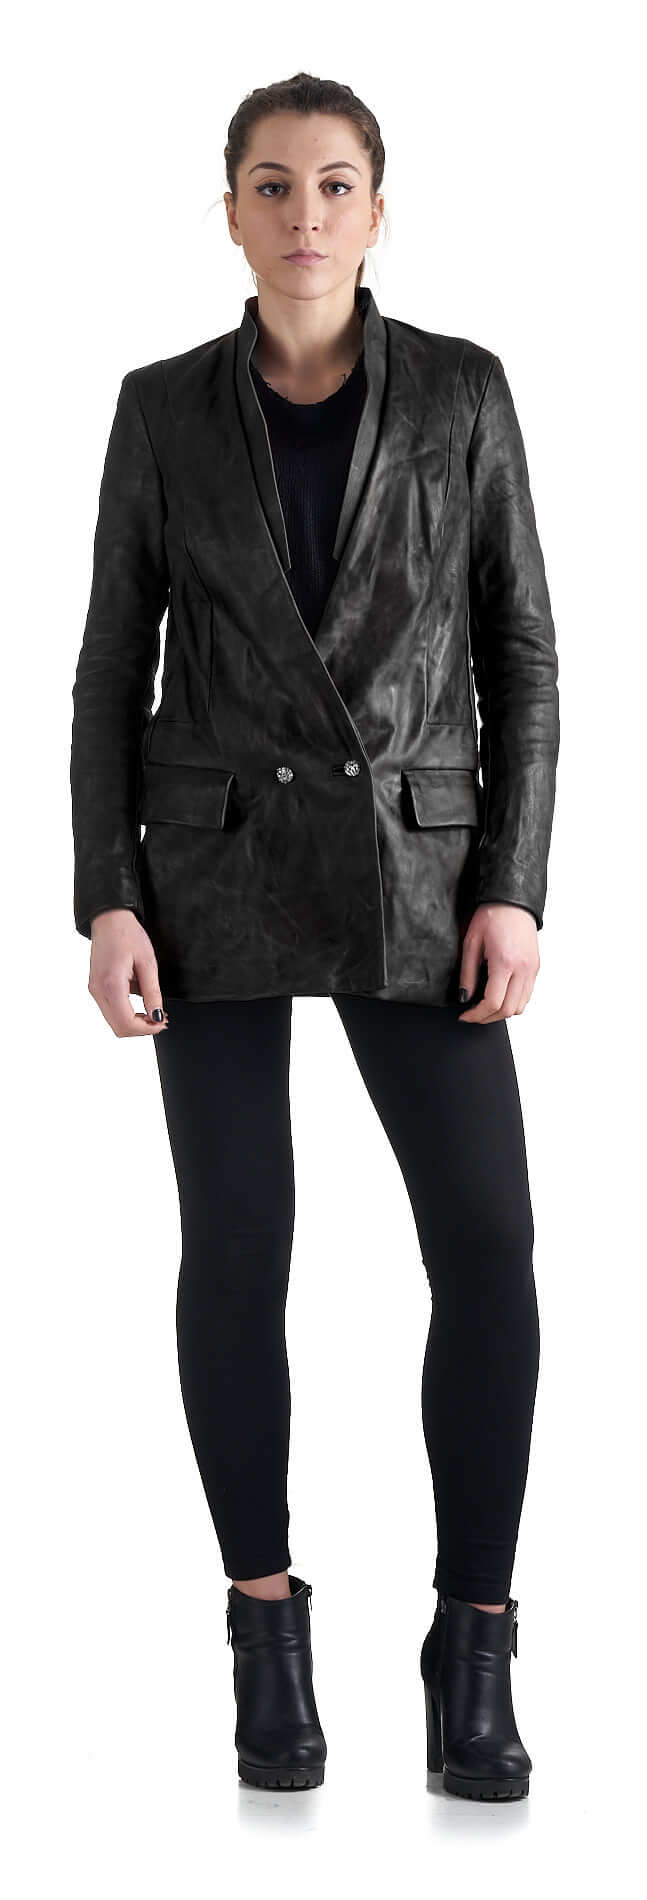 DANIELE BASTA leather and silver jacket - Achimi